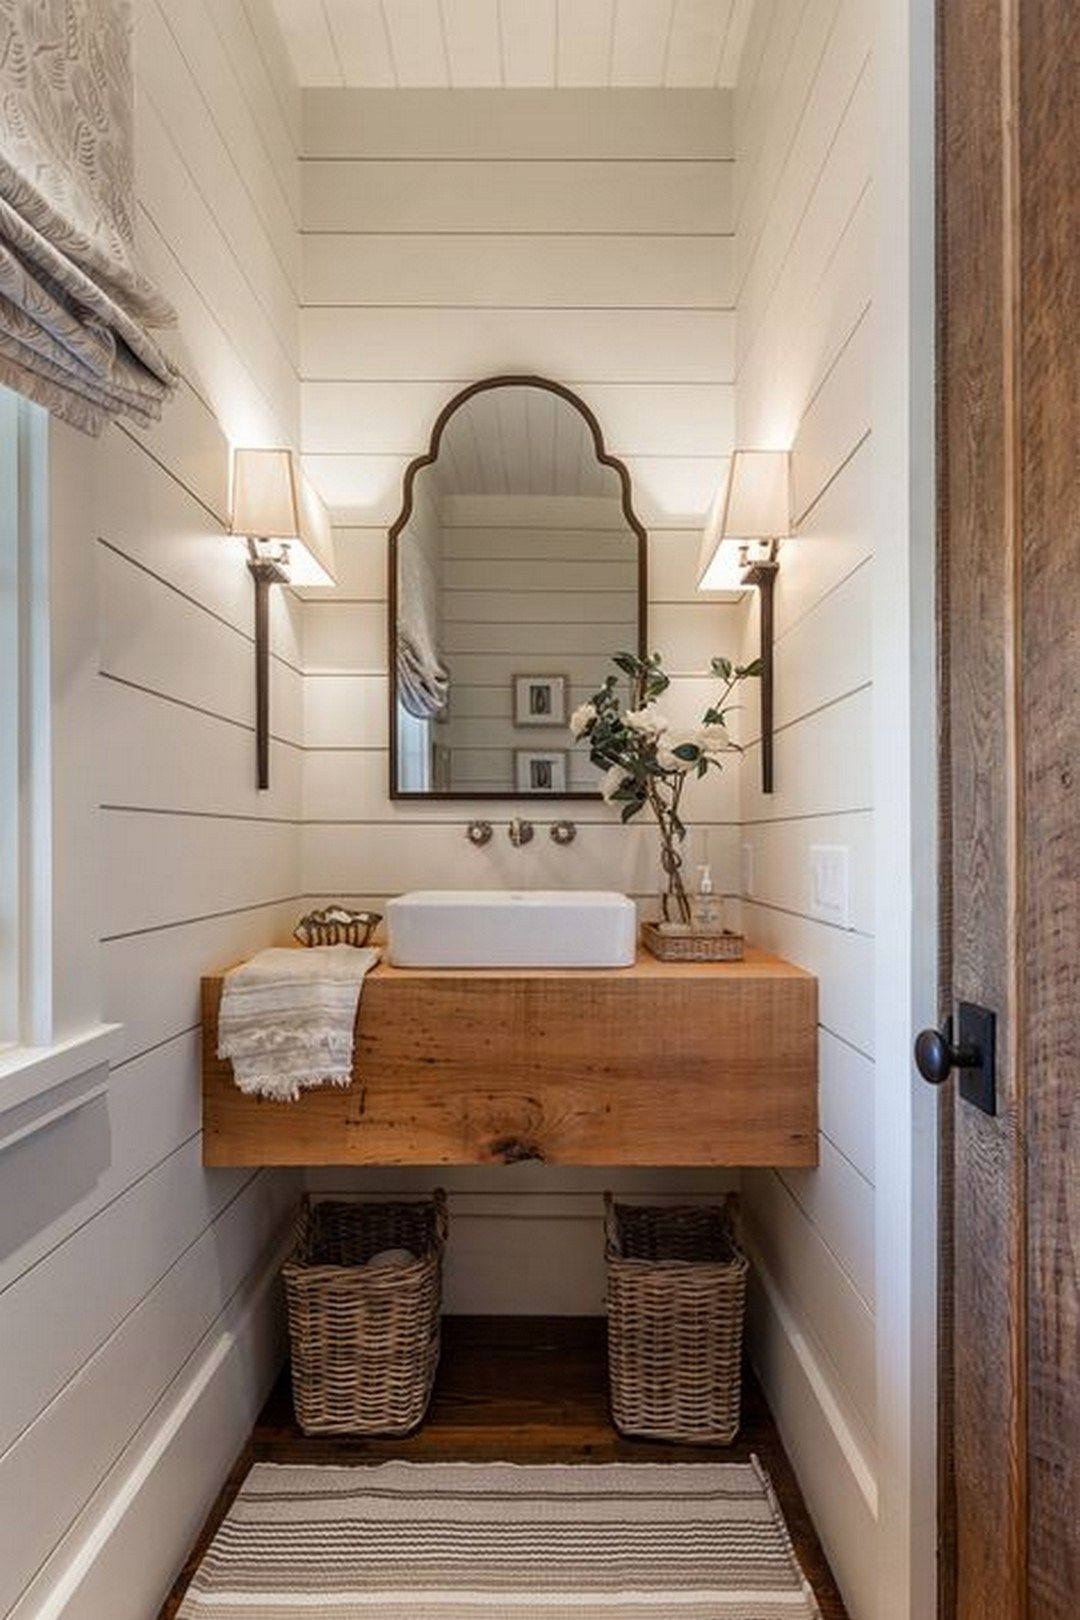 47+ Amazing Rustic Bathroom Decor Will Make Your Home Awesome